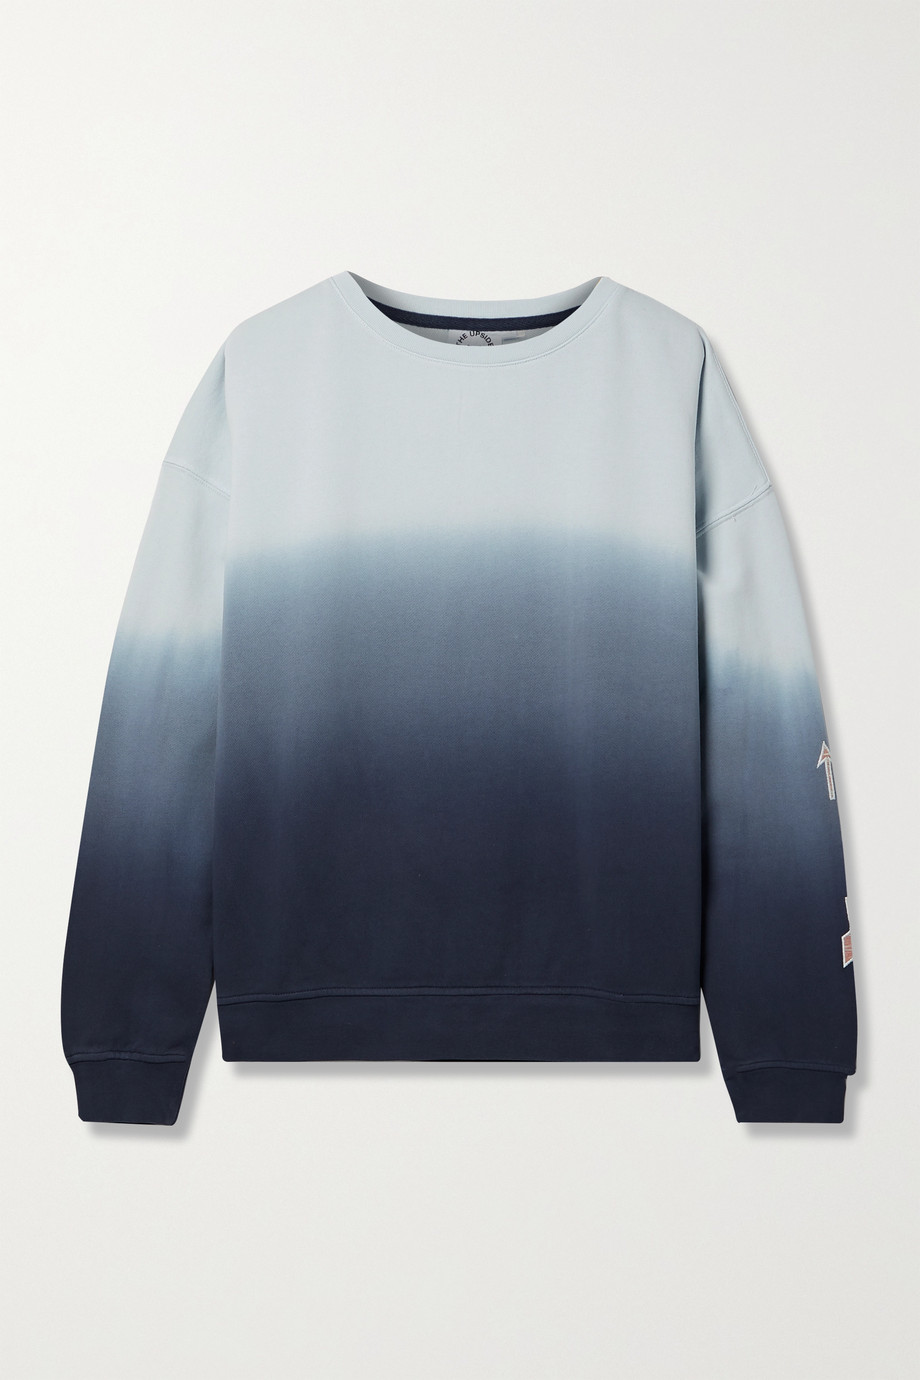 The Upside Alena embroidered ombré cotton-jersey sweatshirt